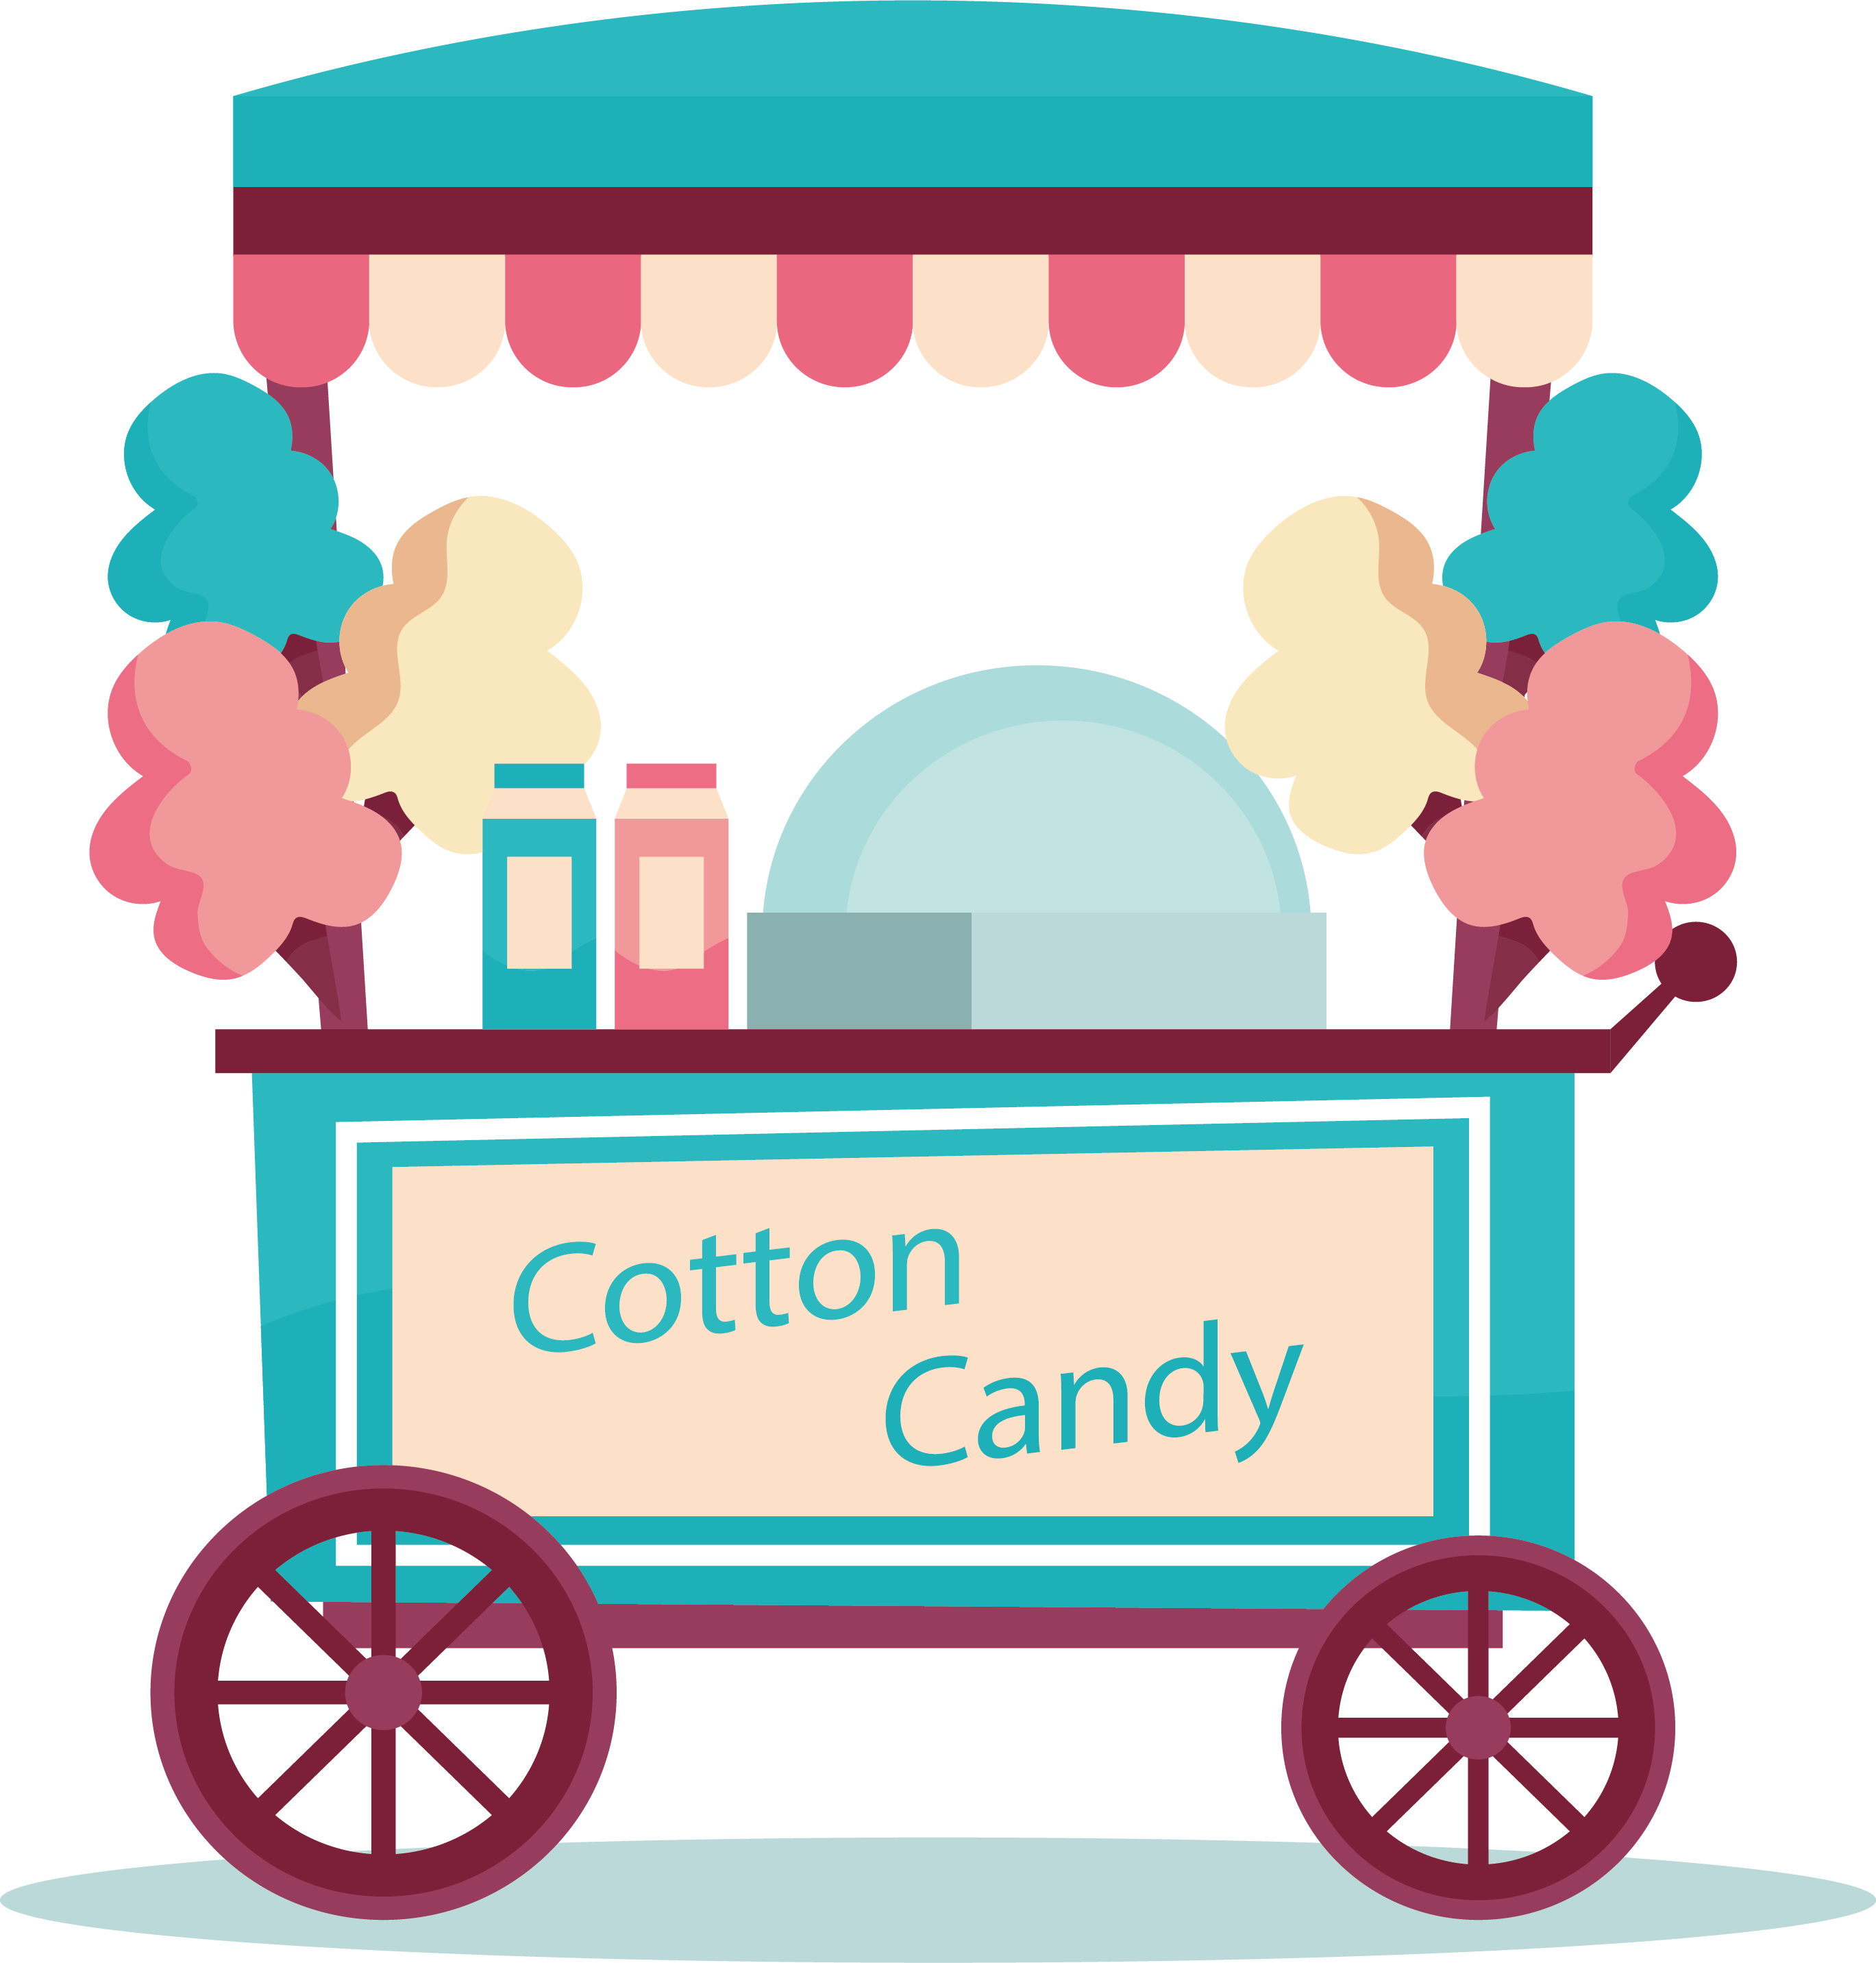 Donut clipart cart. Cotton candy cane lollipop